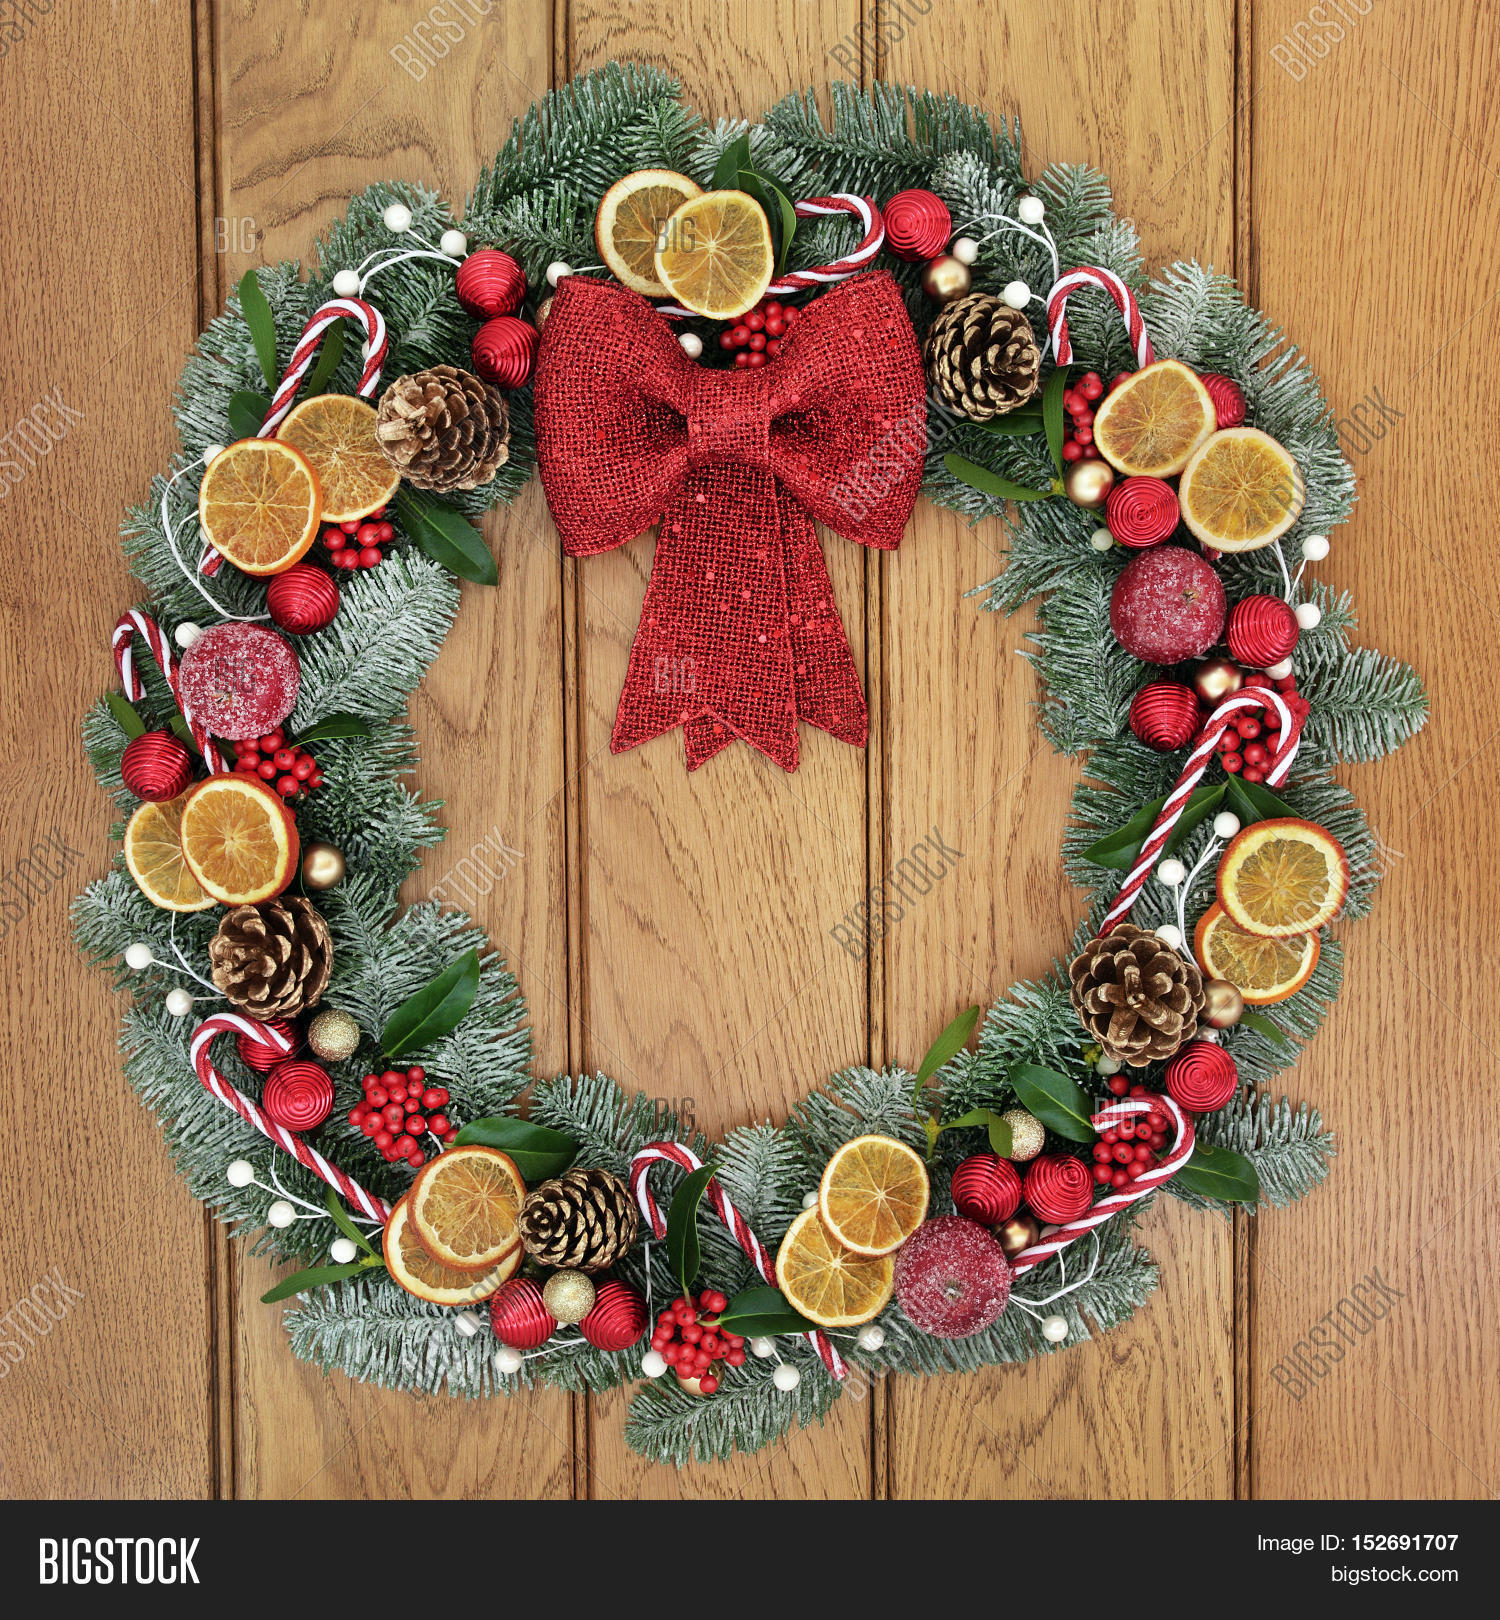 Fruit over the door christmas decoration - Christmas Wreath With Red Bow Decoration Dried Fruit Candy Canes Baubles Holly